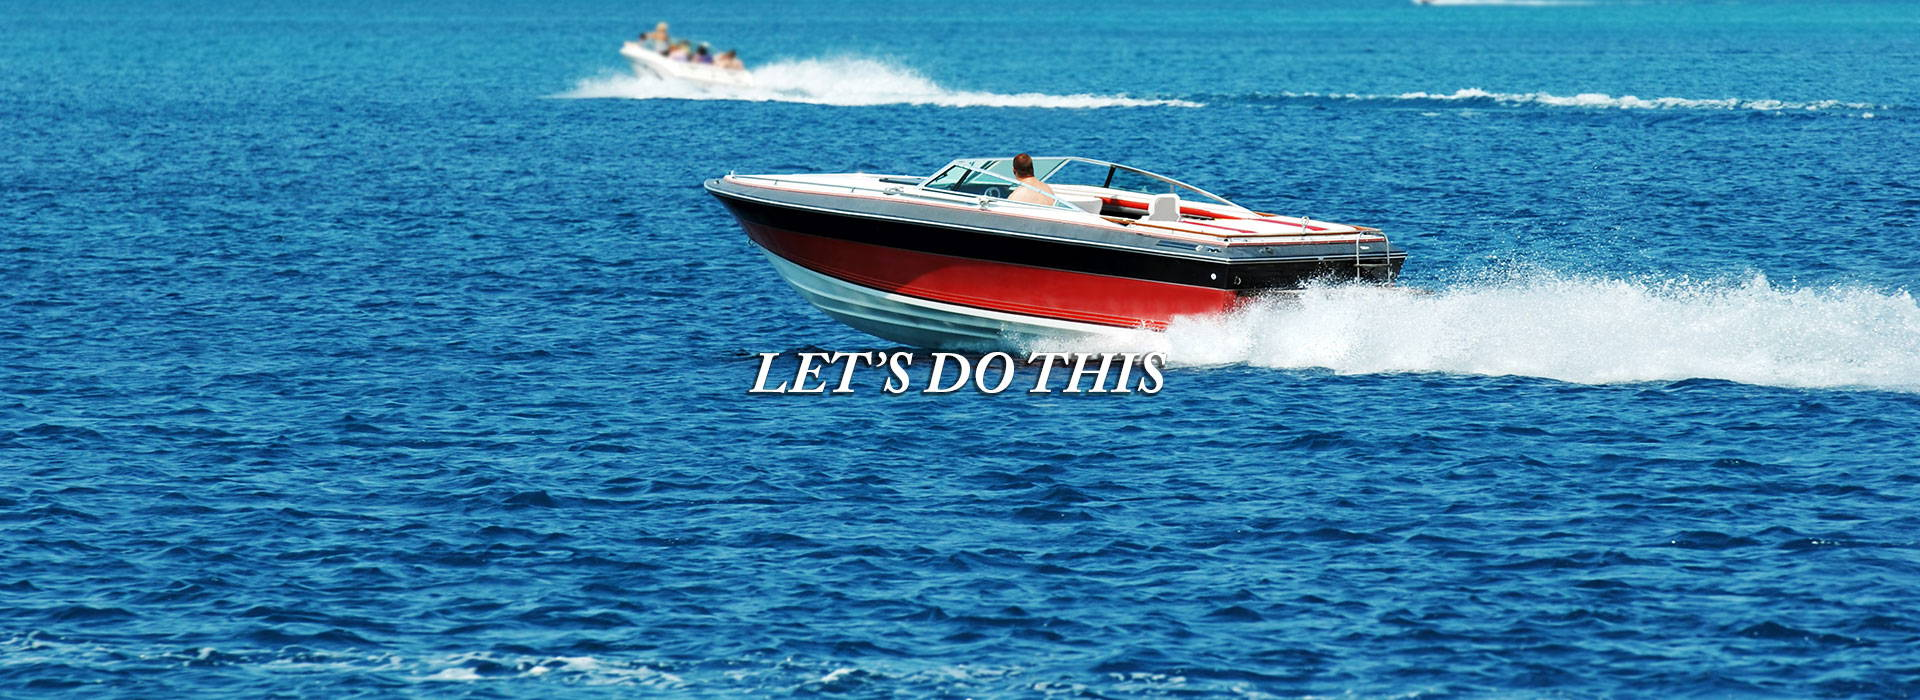 lets do this quote by briny